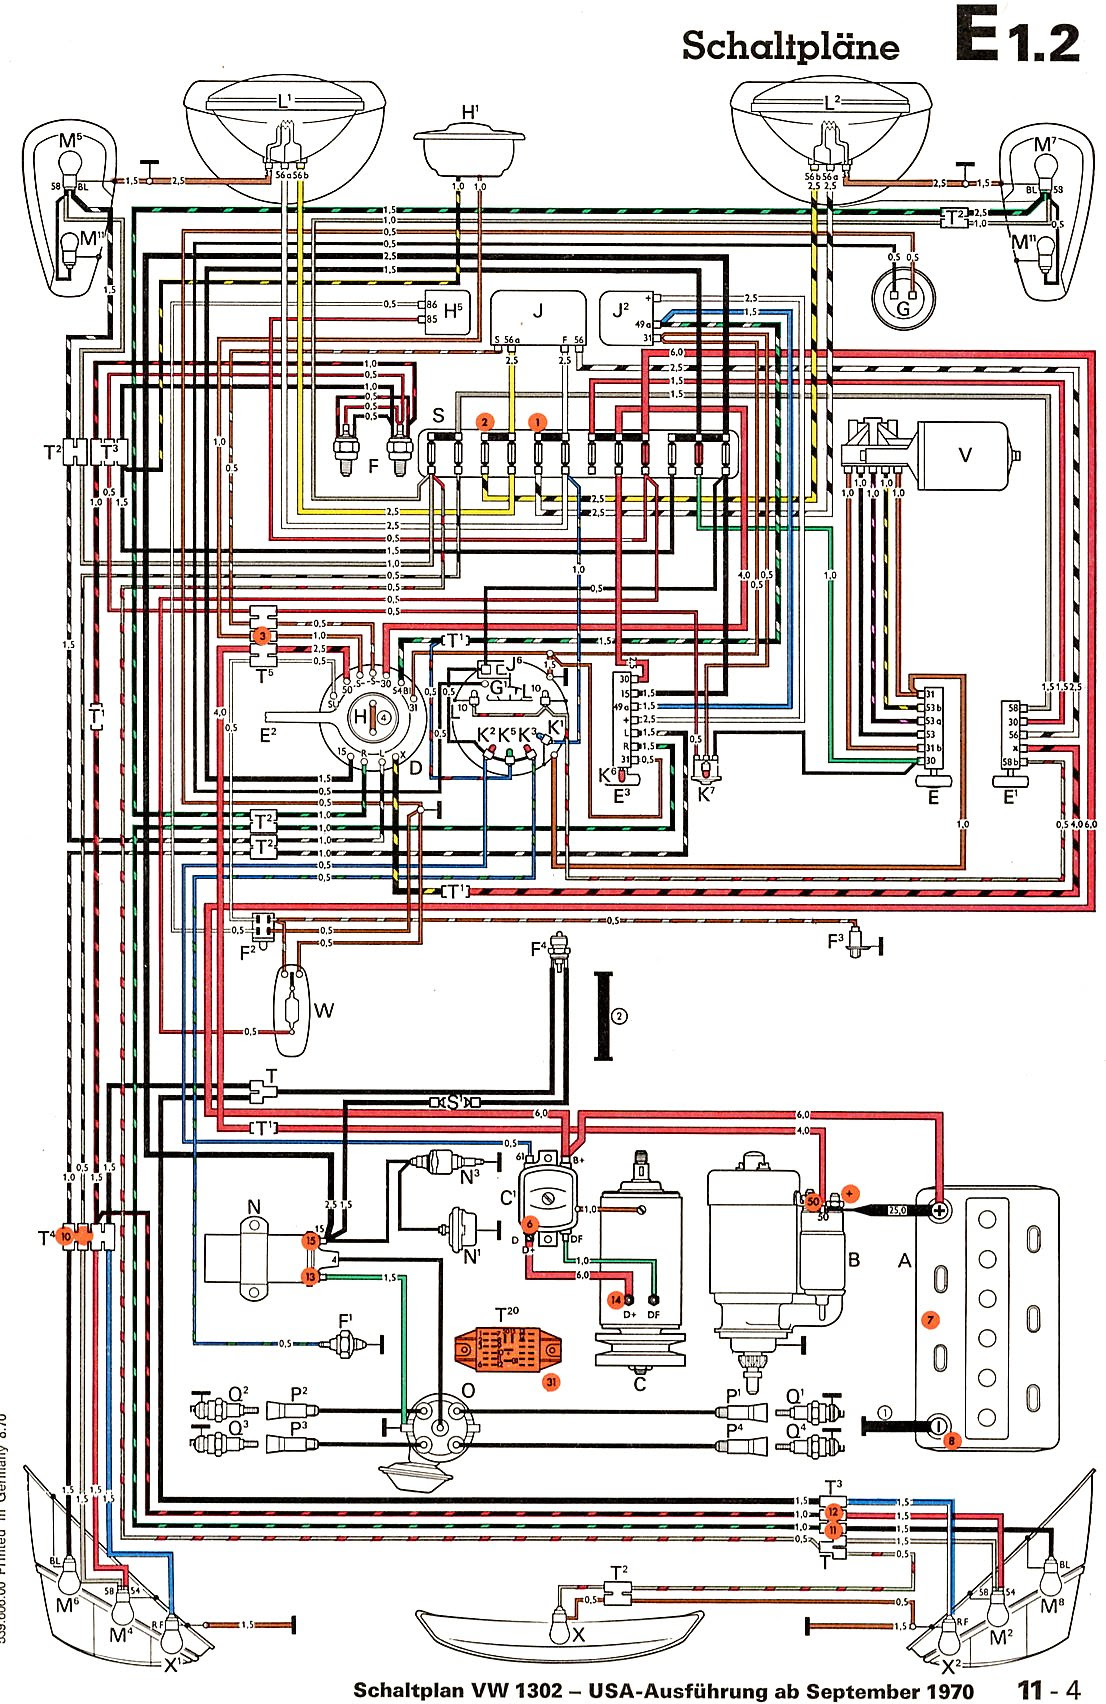 Diagram In Pictures Database 1970 Vw Bus Fuse Box Just Download Or Read Fuse Box Patrice Ordas A Tape Diagram Onyxum Com